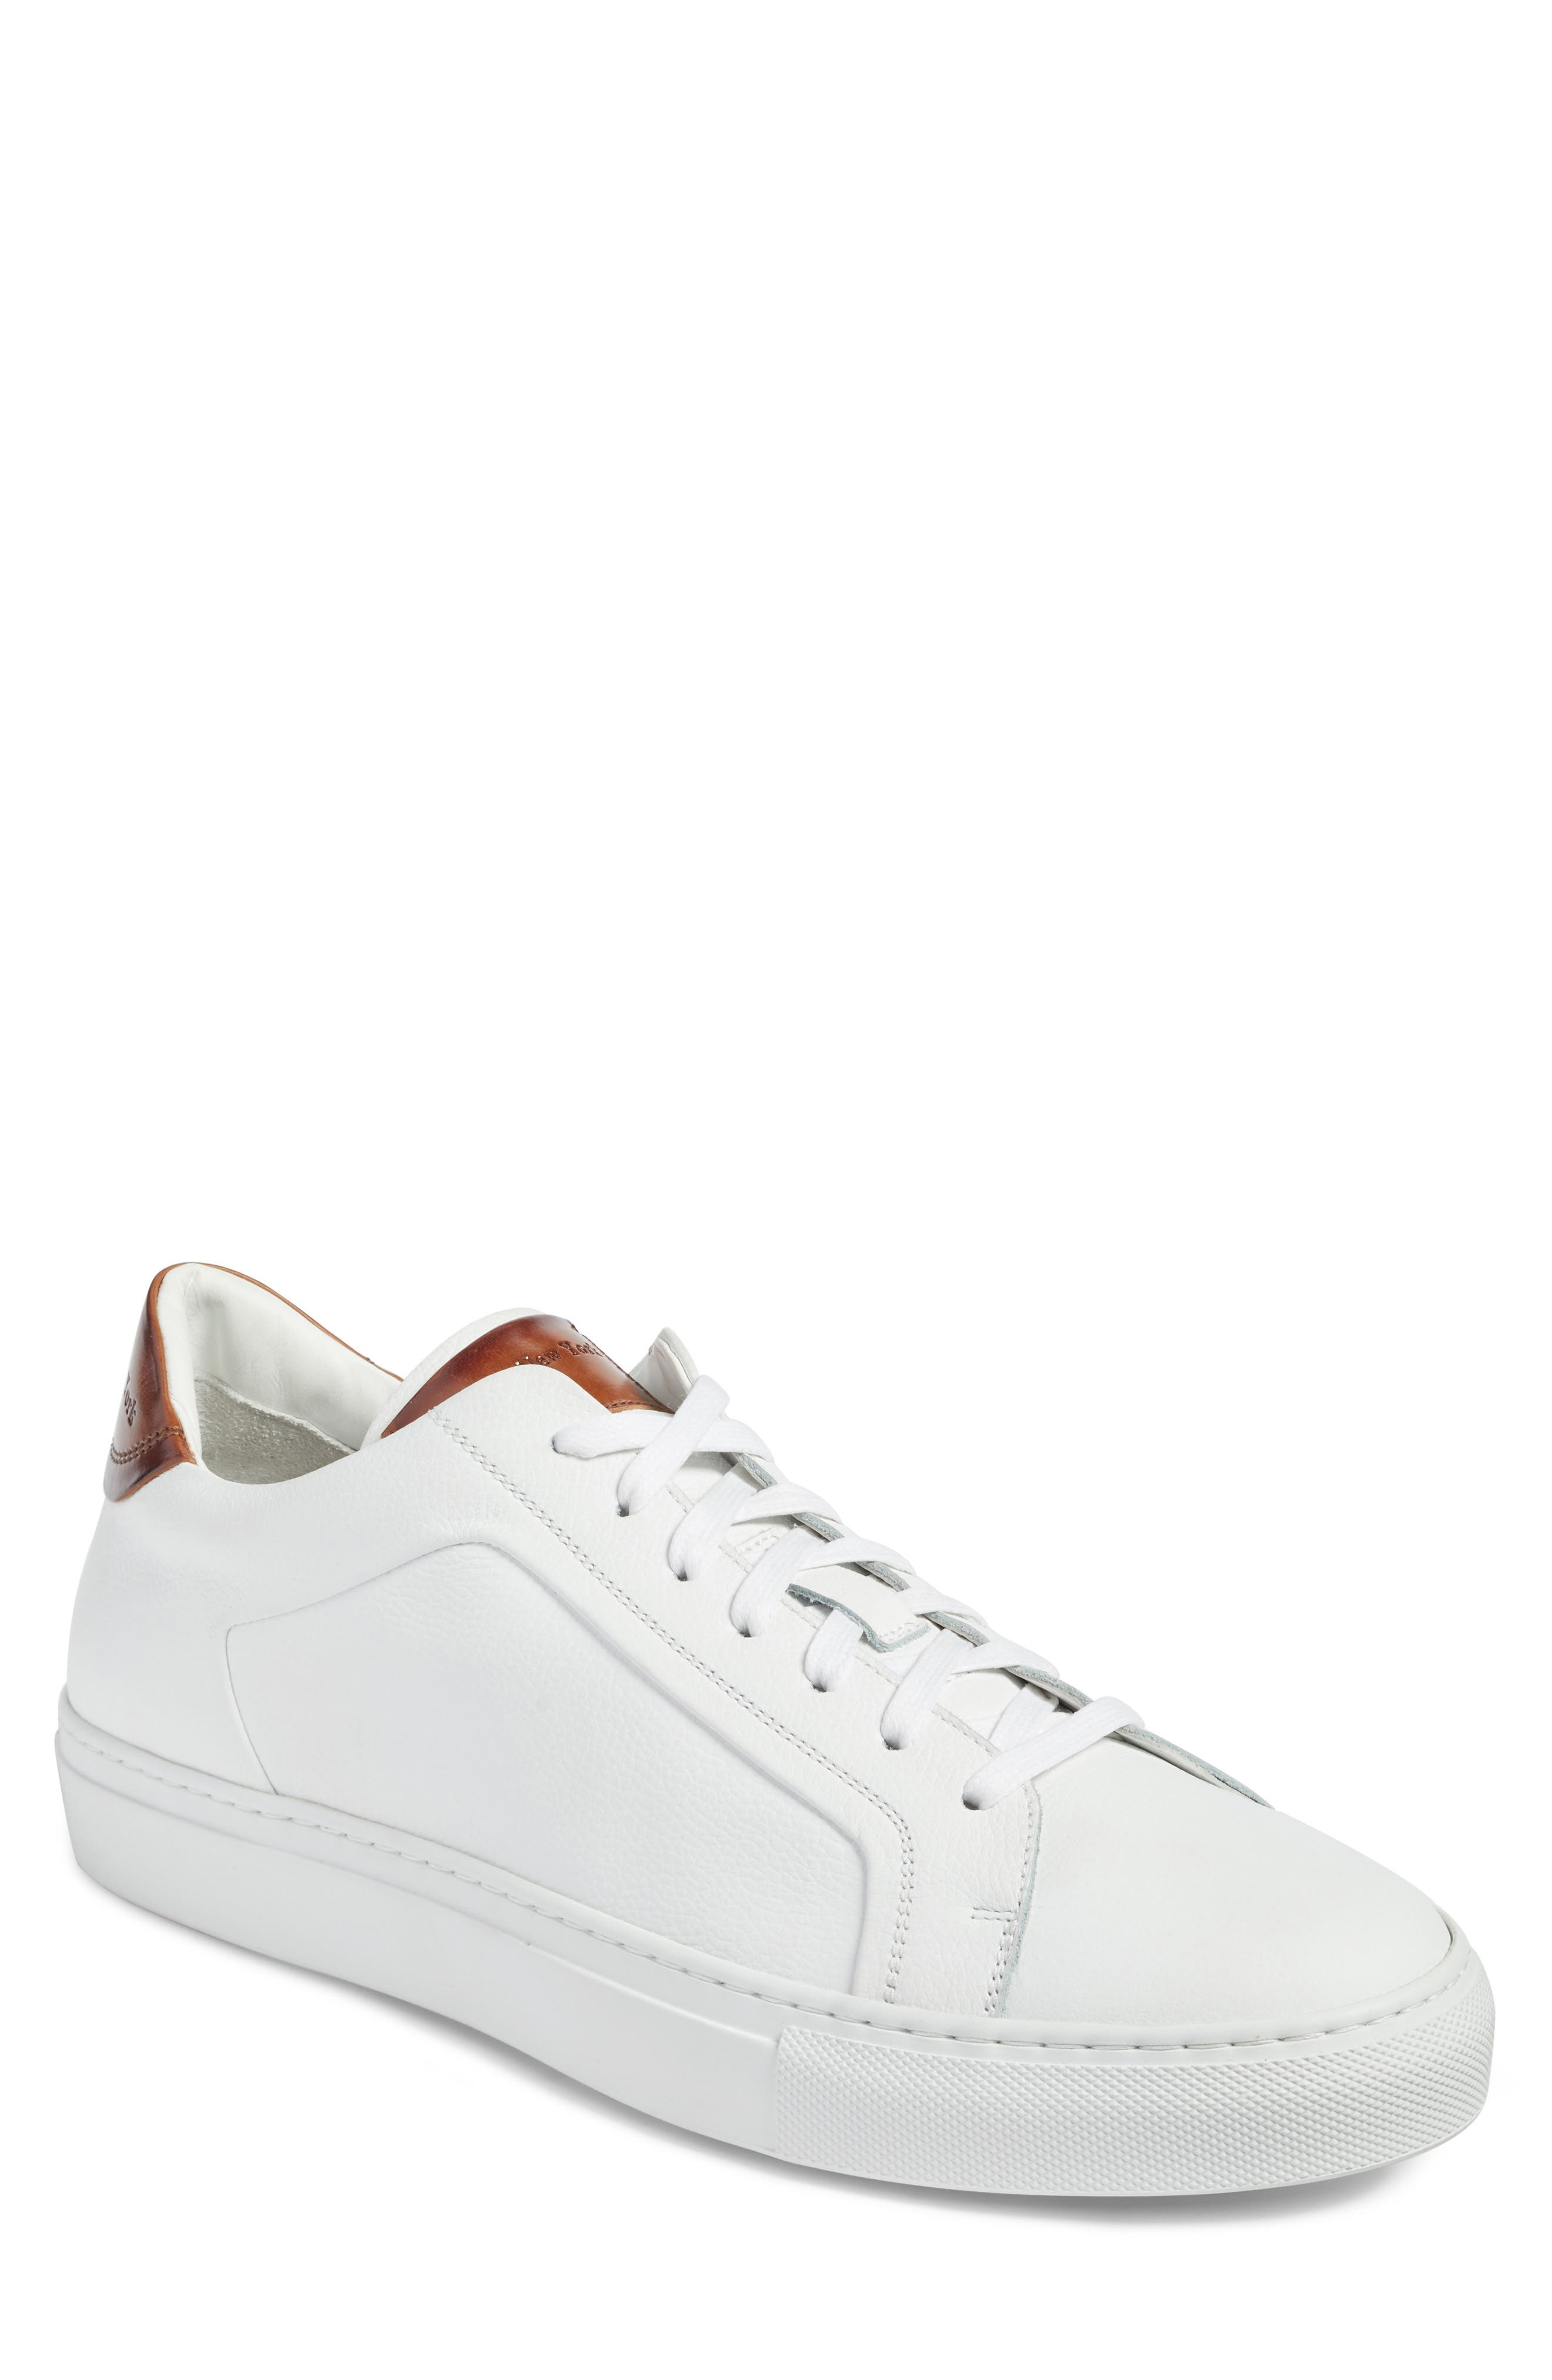 Carlin Sneaker,                             Main thumbnail 1, color,                             White/ Tan Leather